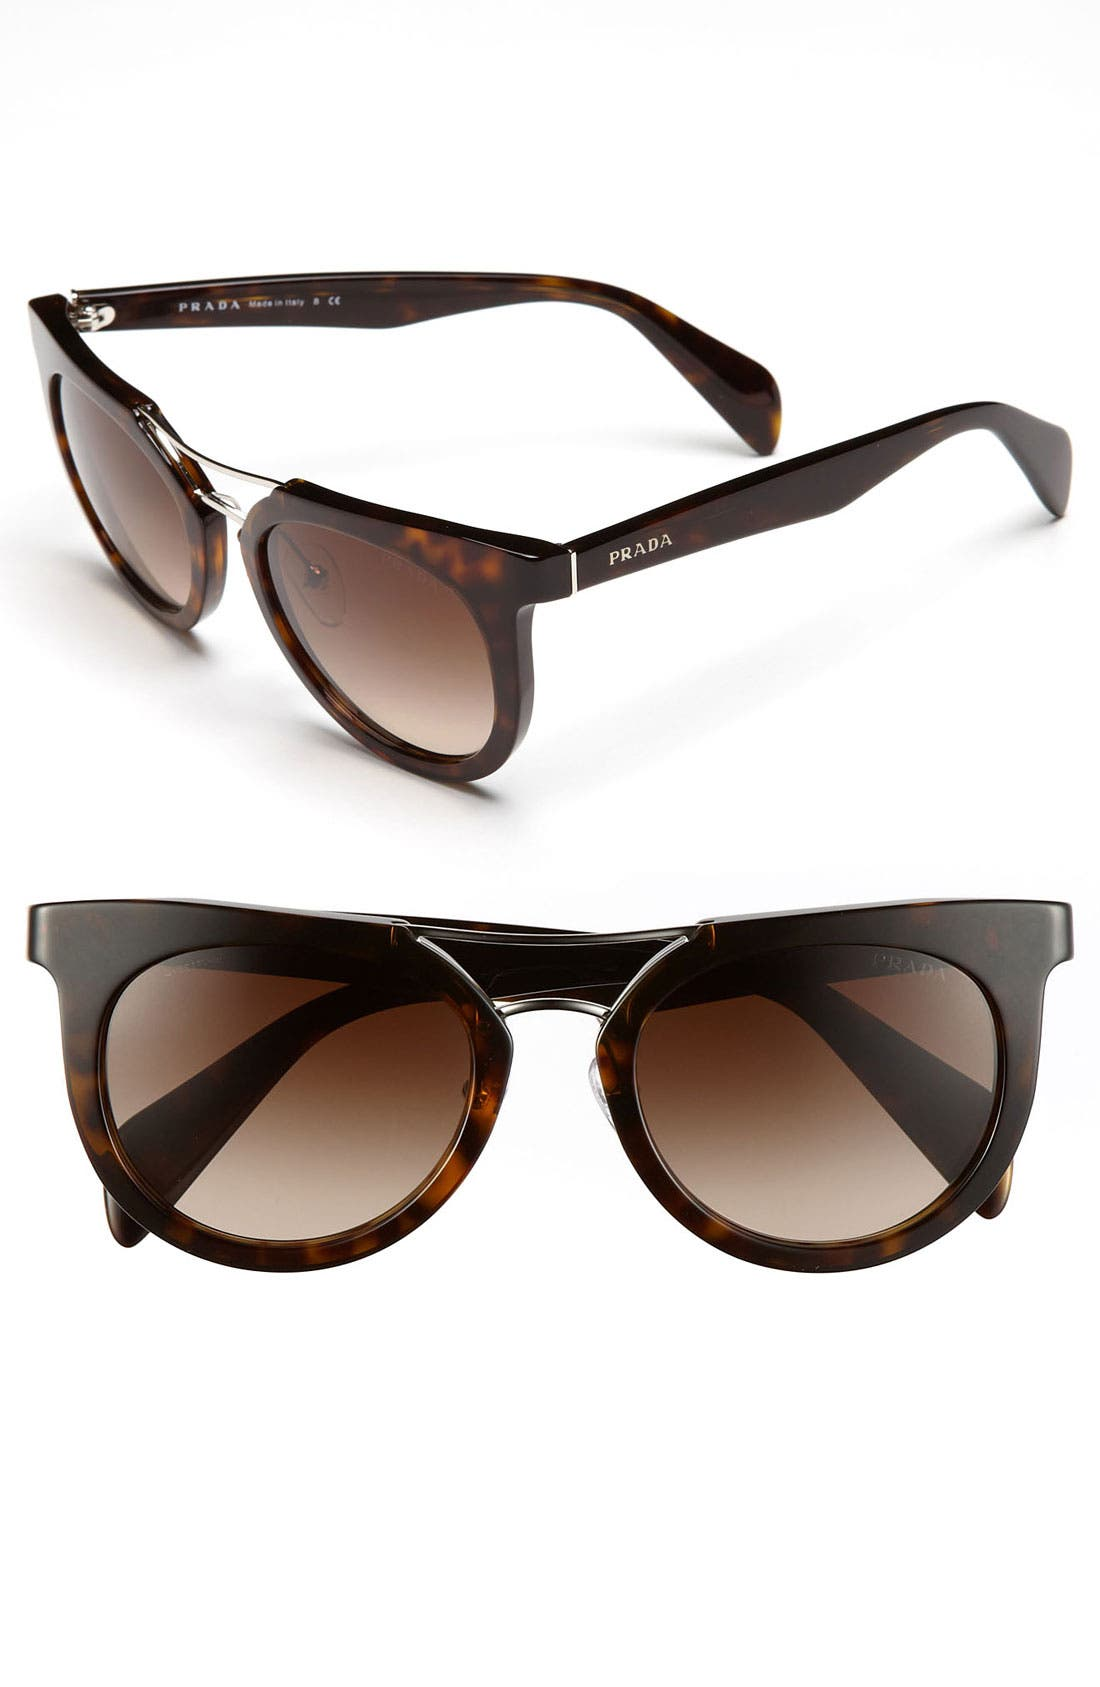 Main Image - Prada 'Timeless' 51mm Sunglasses